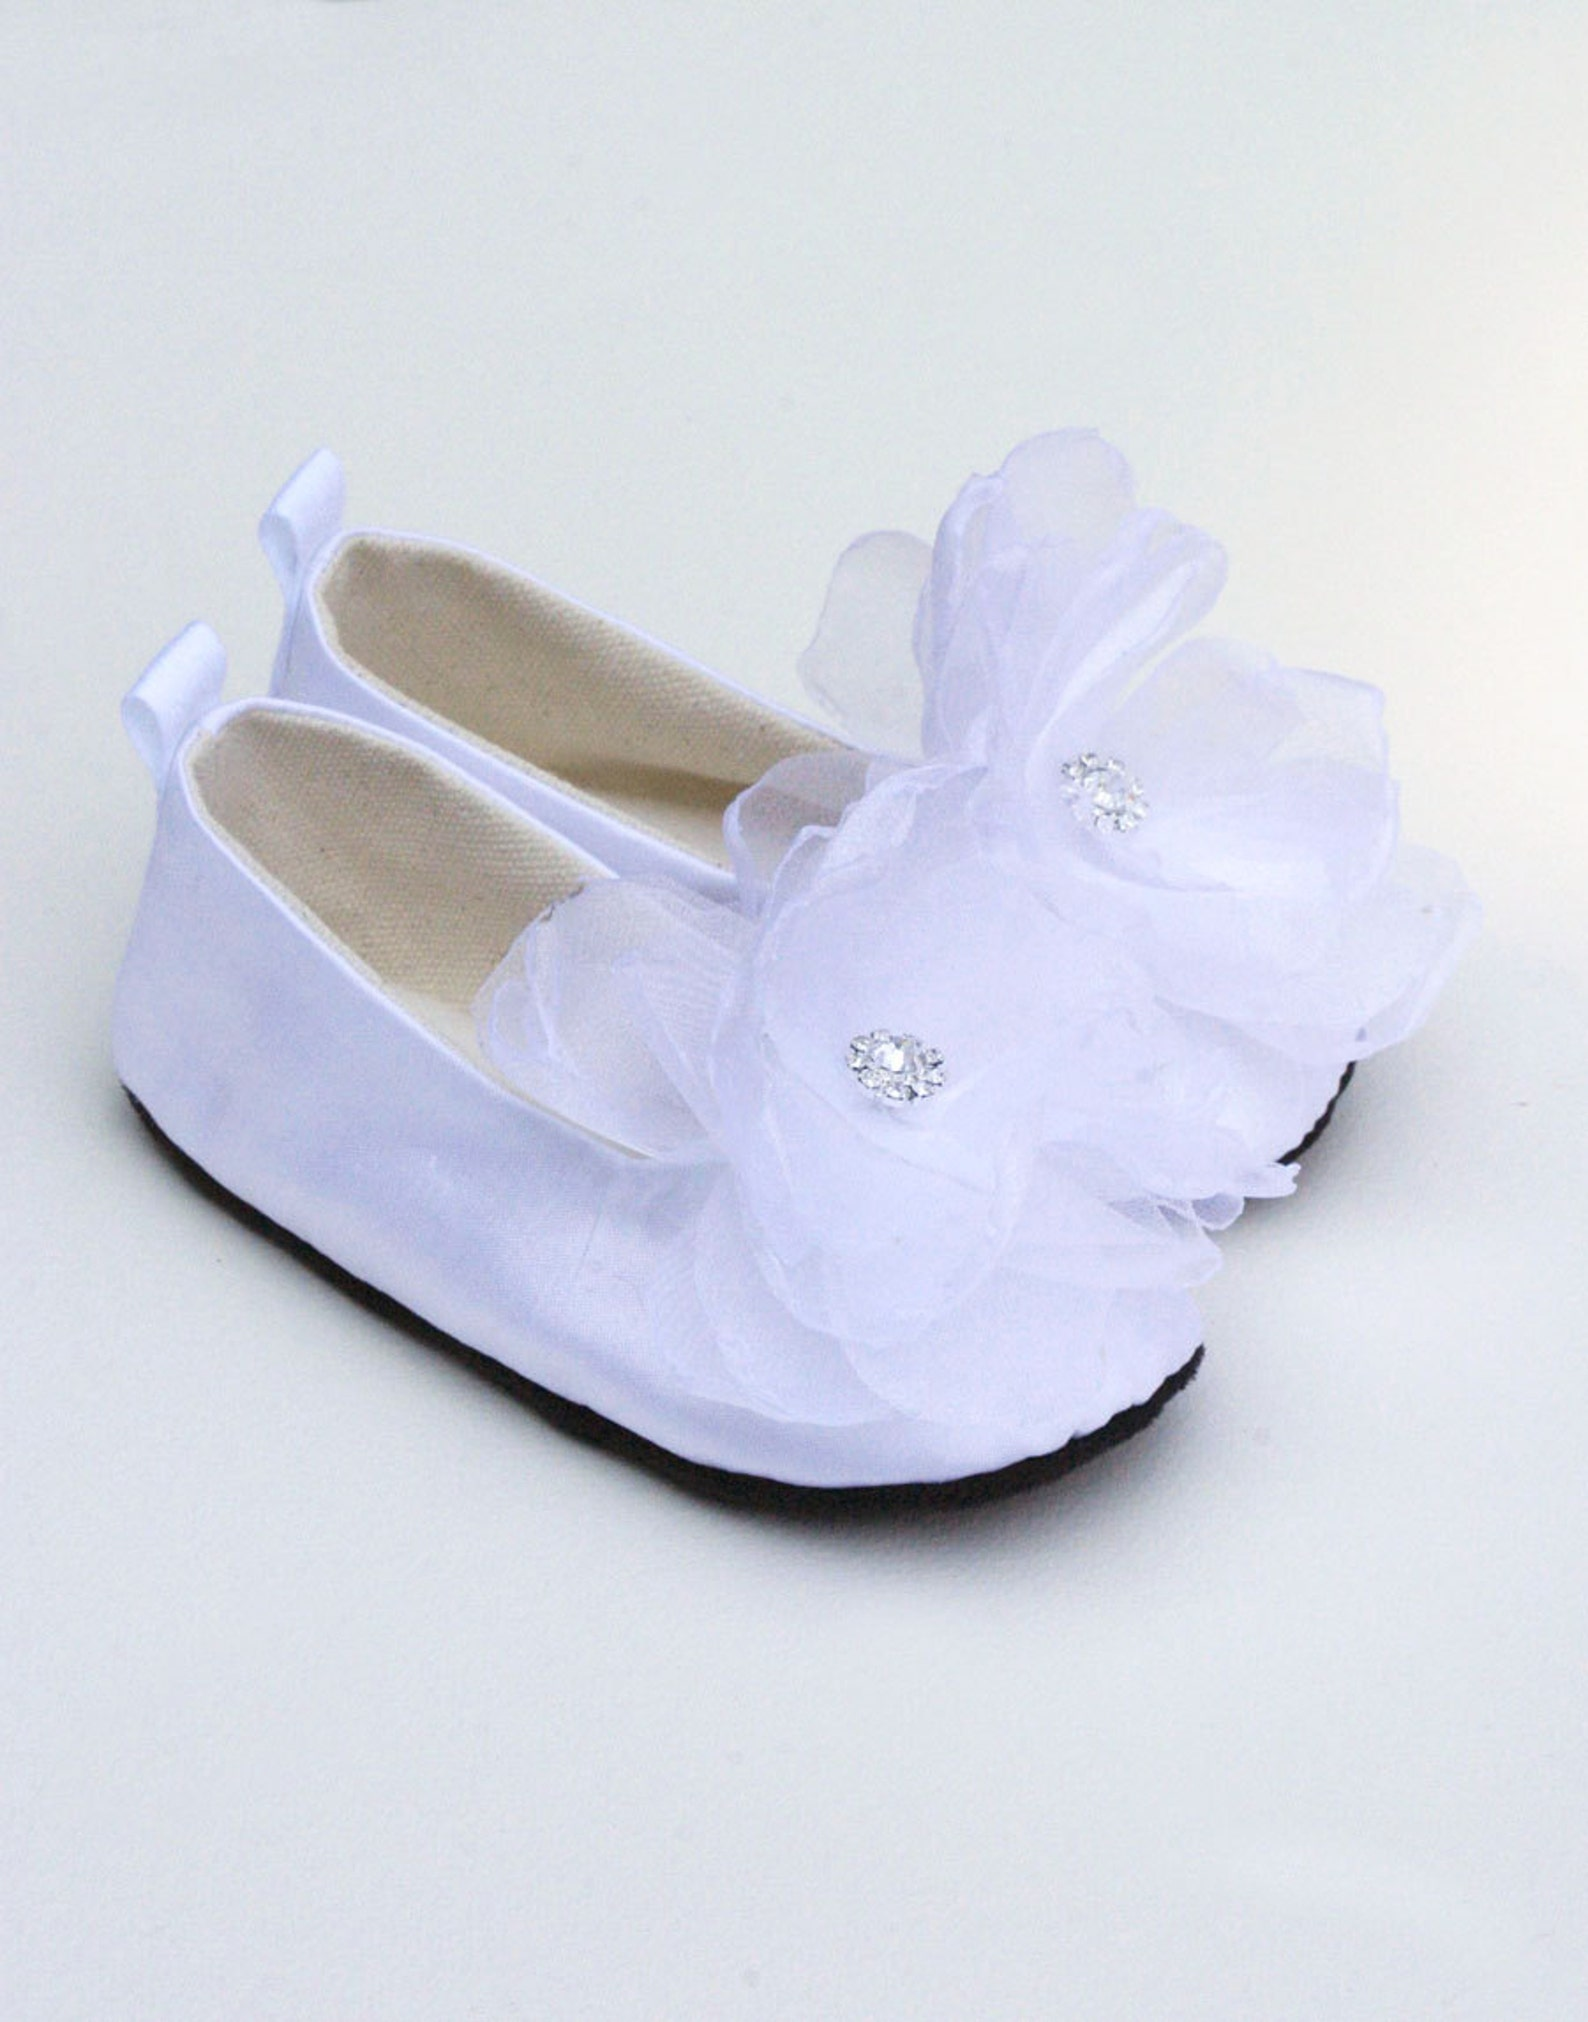 silver toddler shoes, grey silk baby ballet slipper, easter, flower girl, 7 colors, little girl wedding ballet flat, christening